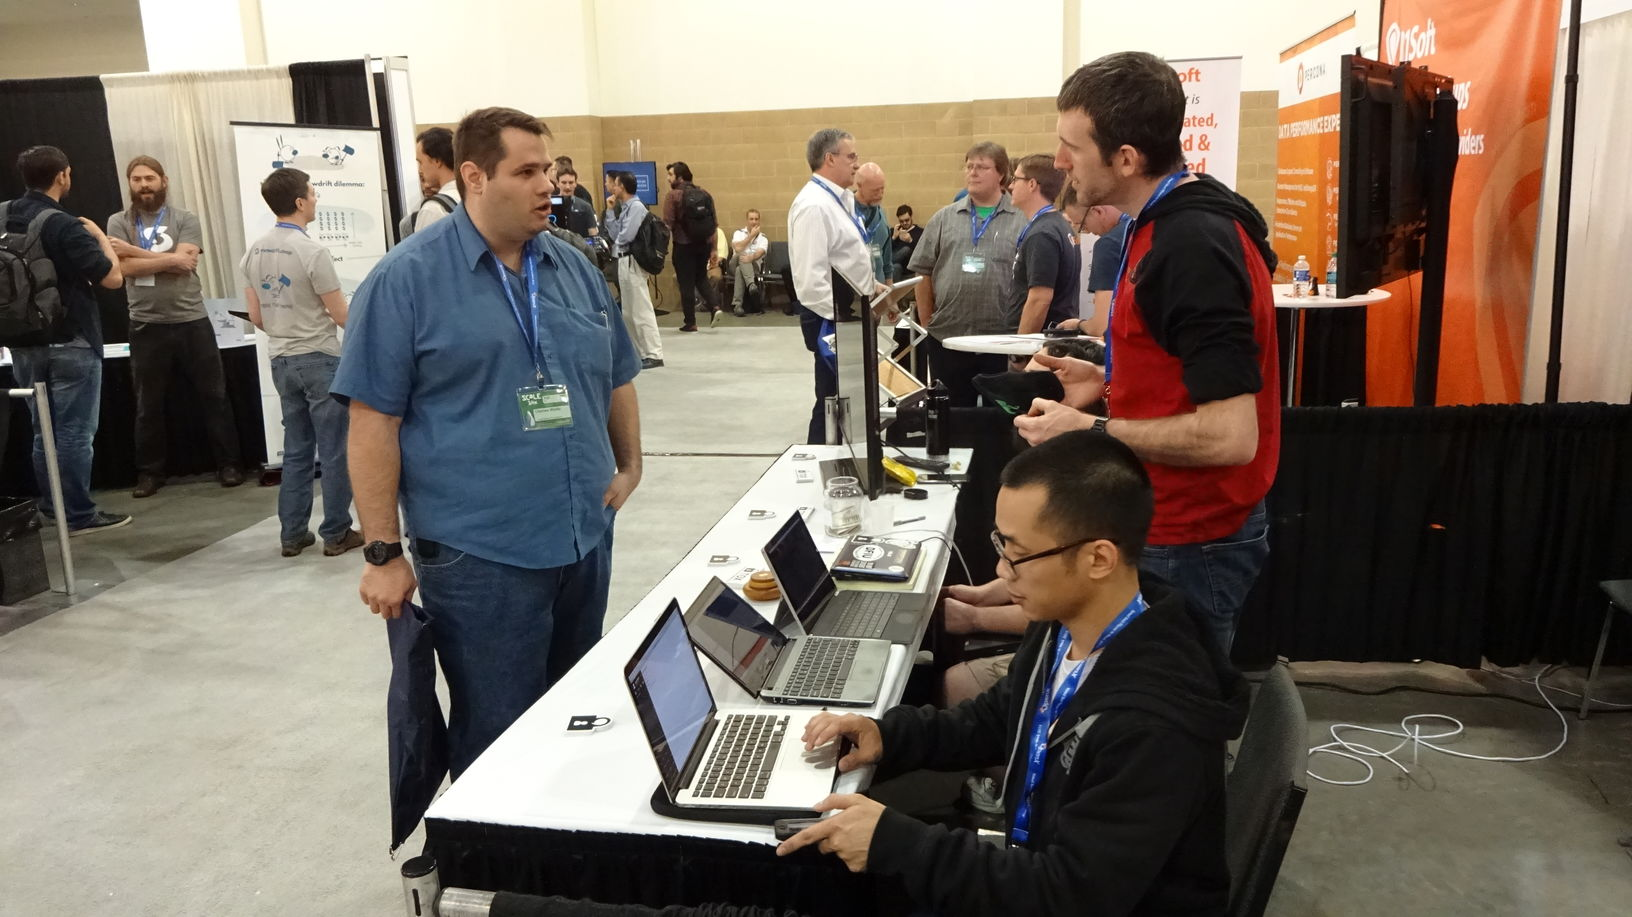 Chuong Vu (near) and Greg Mullen (far) explaining Tox to an expo attendee